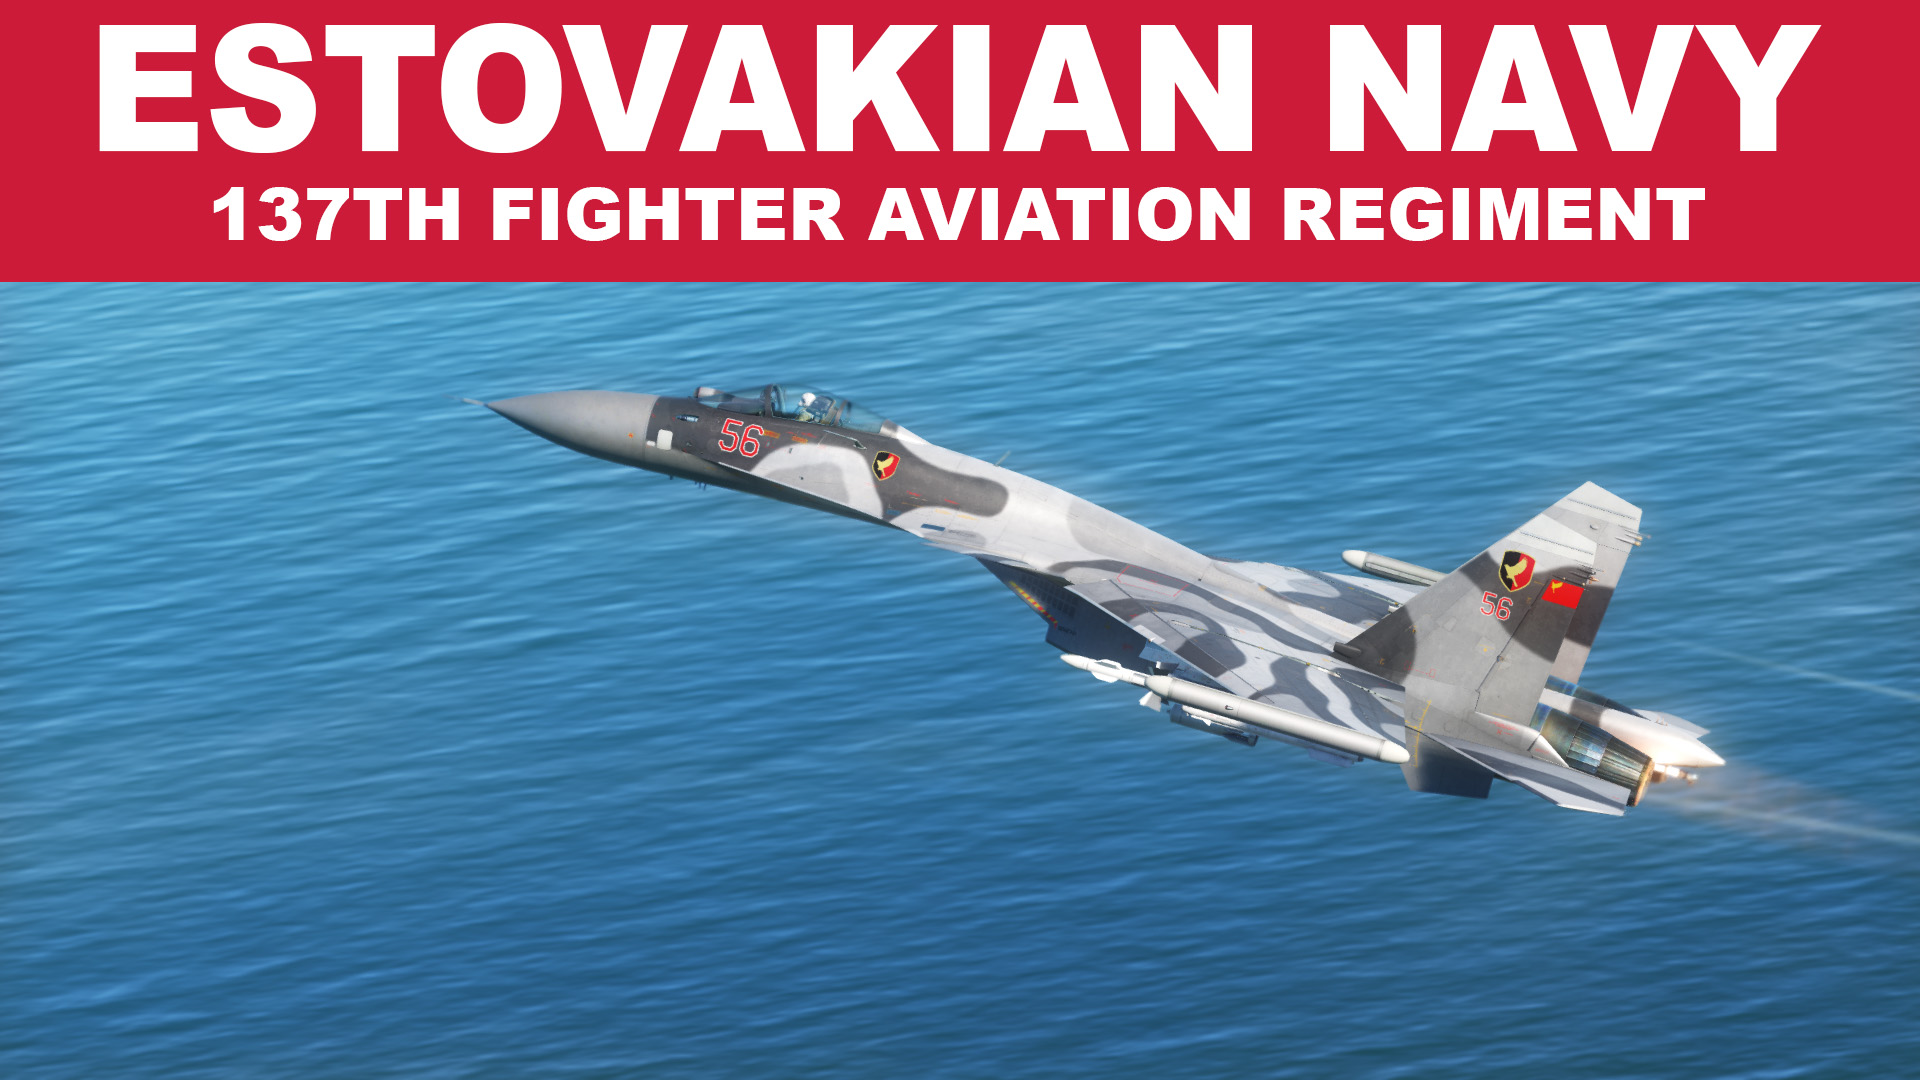 Ace Combat Estovakian Navy Su-33: 137th Fighter Aviation Regiment